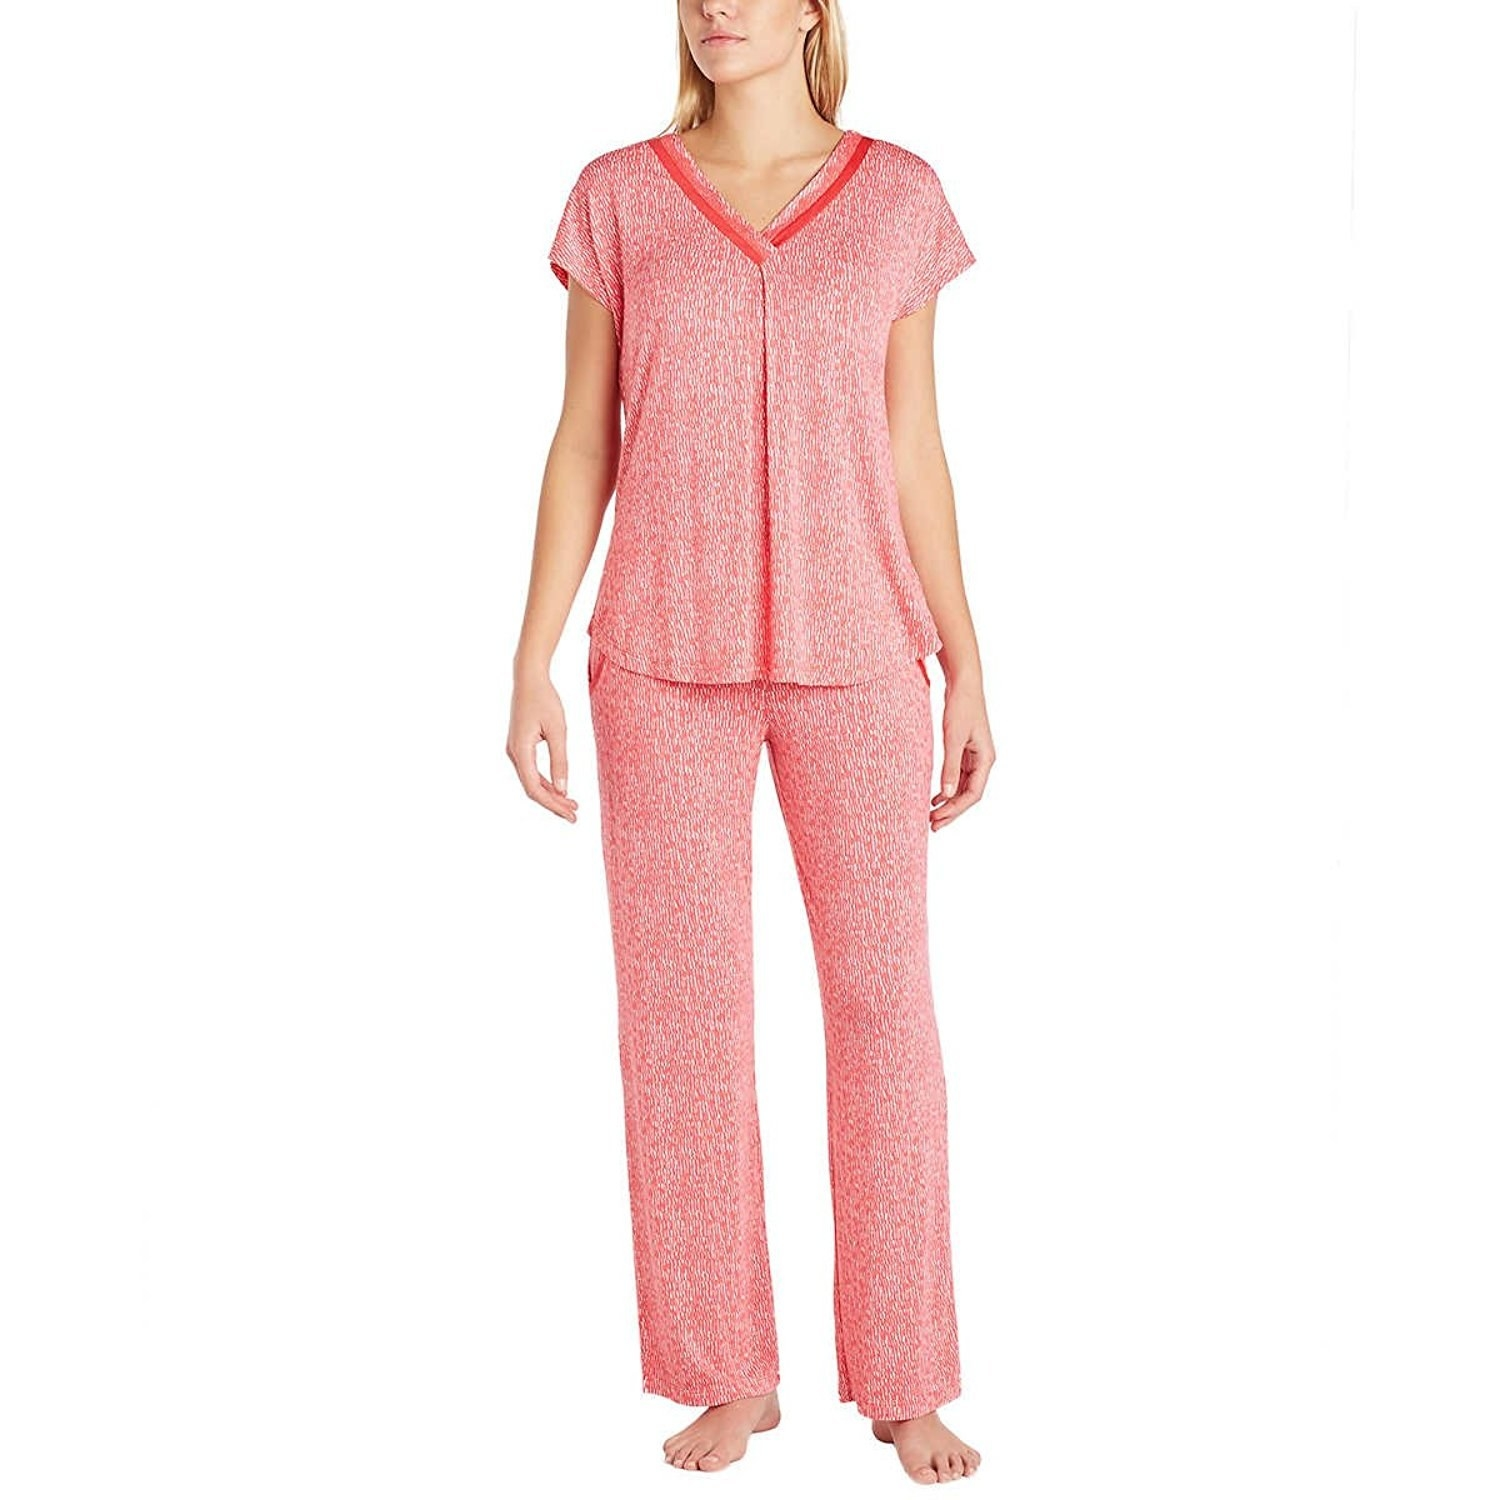 de0fab54ae 27 Cozy Pajamas You ll Want To Hibernate In This Winter